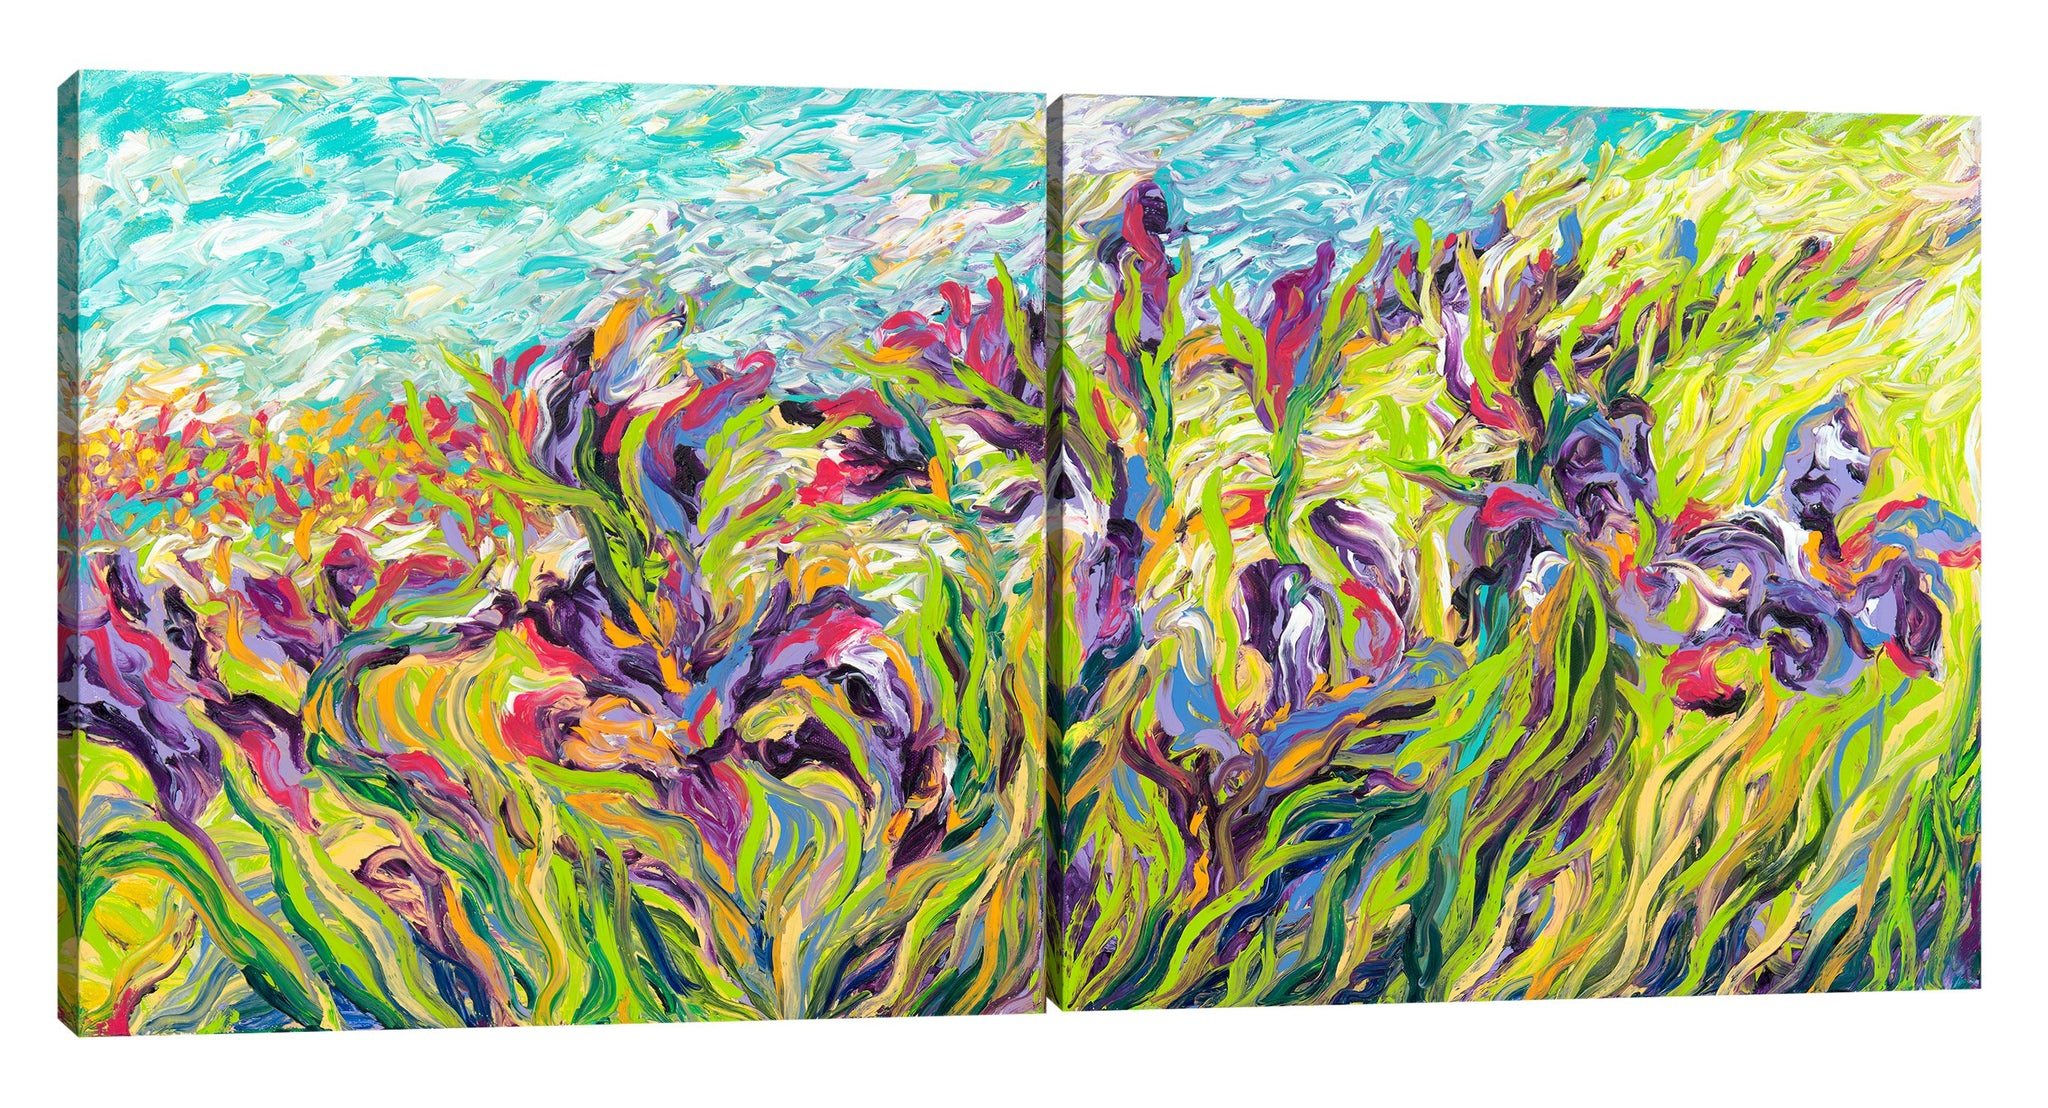 Iris-Scott, impressionism, clouds, floral, Floral & Botanical, florals, flower, flowers, Iris-Scott, leaves, Modern & Contemporary, skies, multi-panel